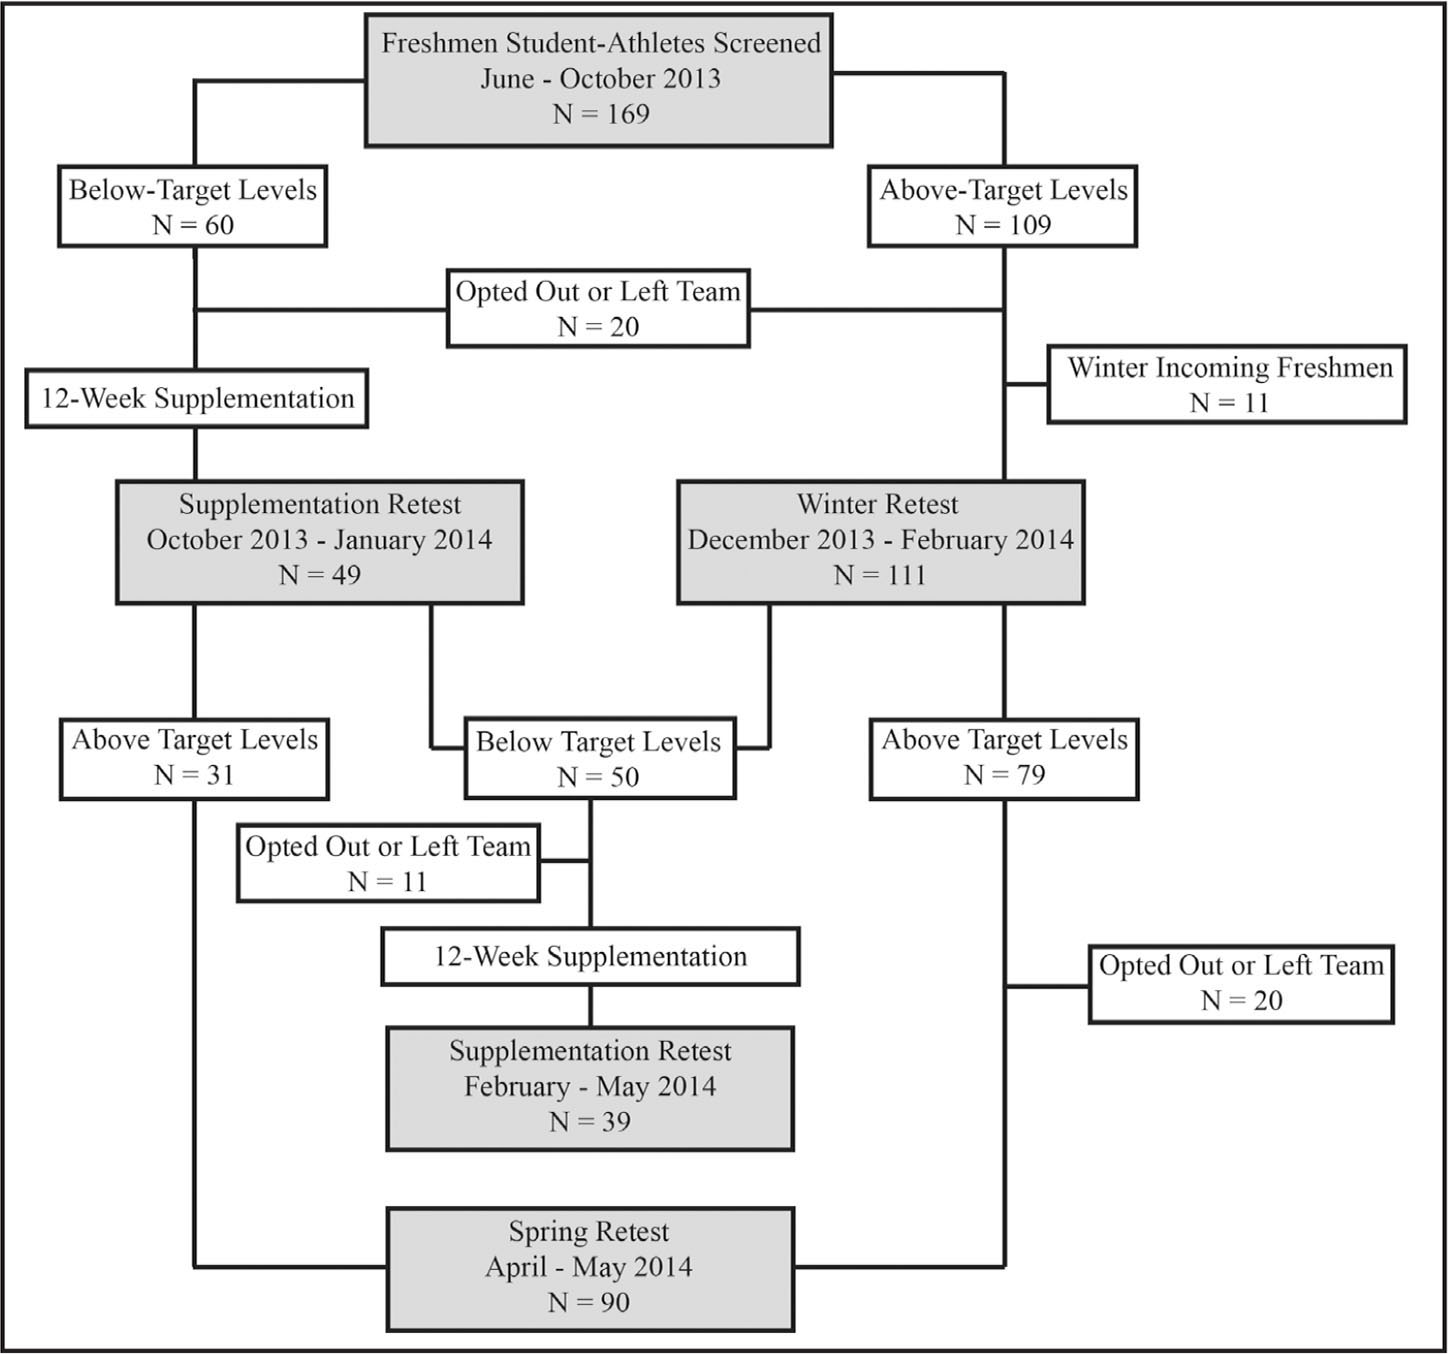 Testing schedule of freshmen athletes from fall 2013 through spring 2014.